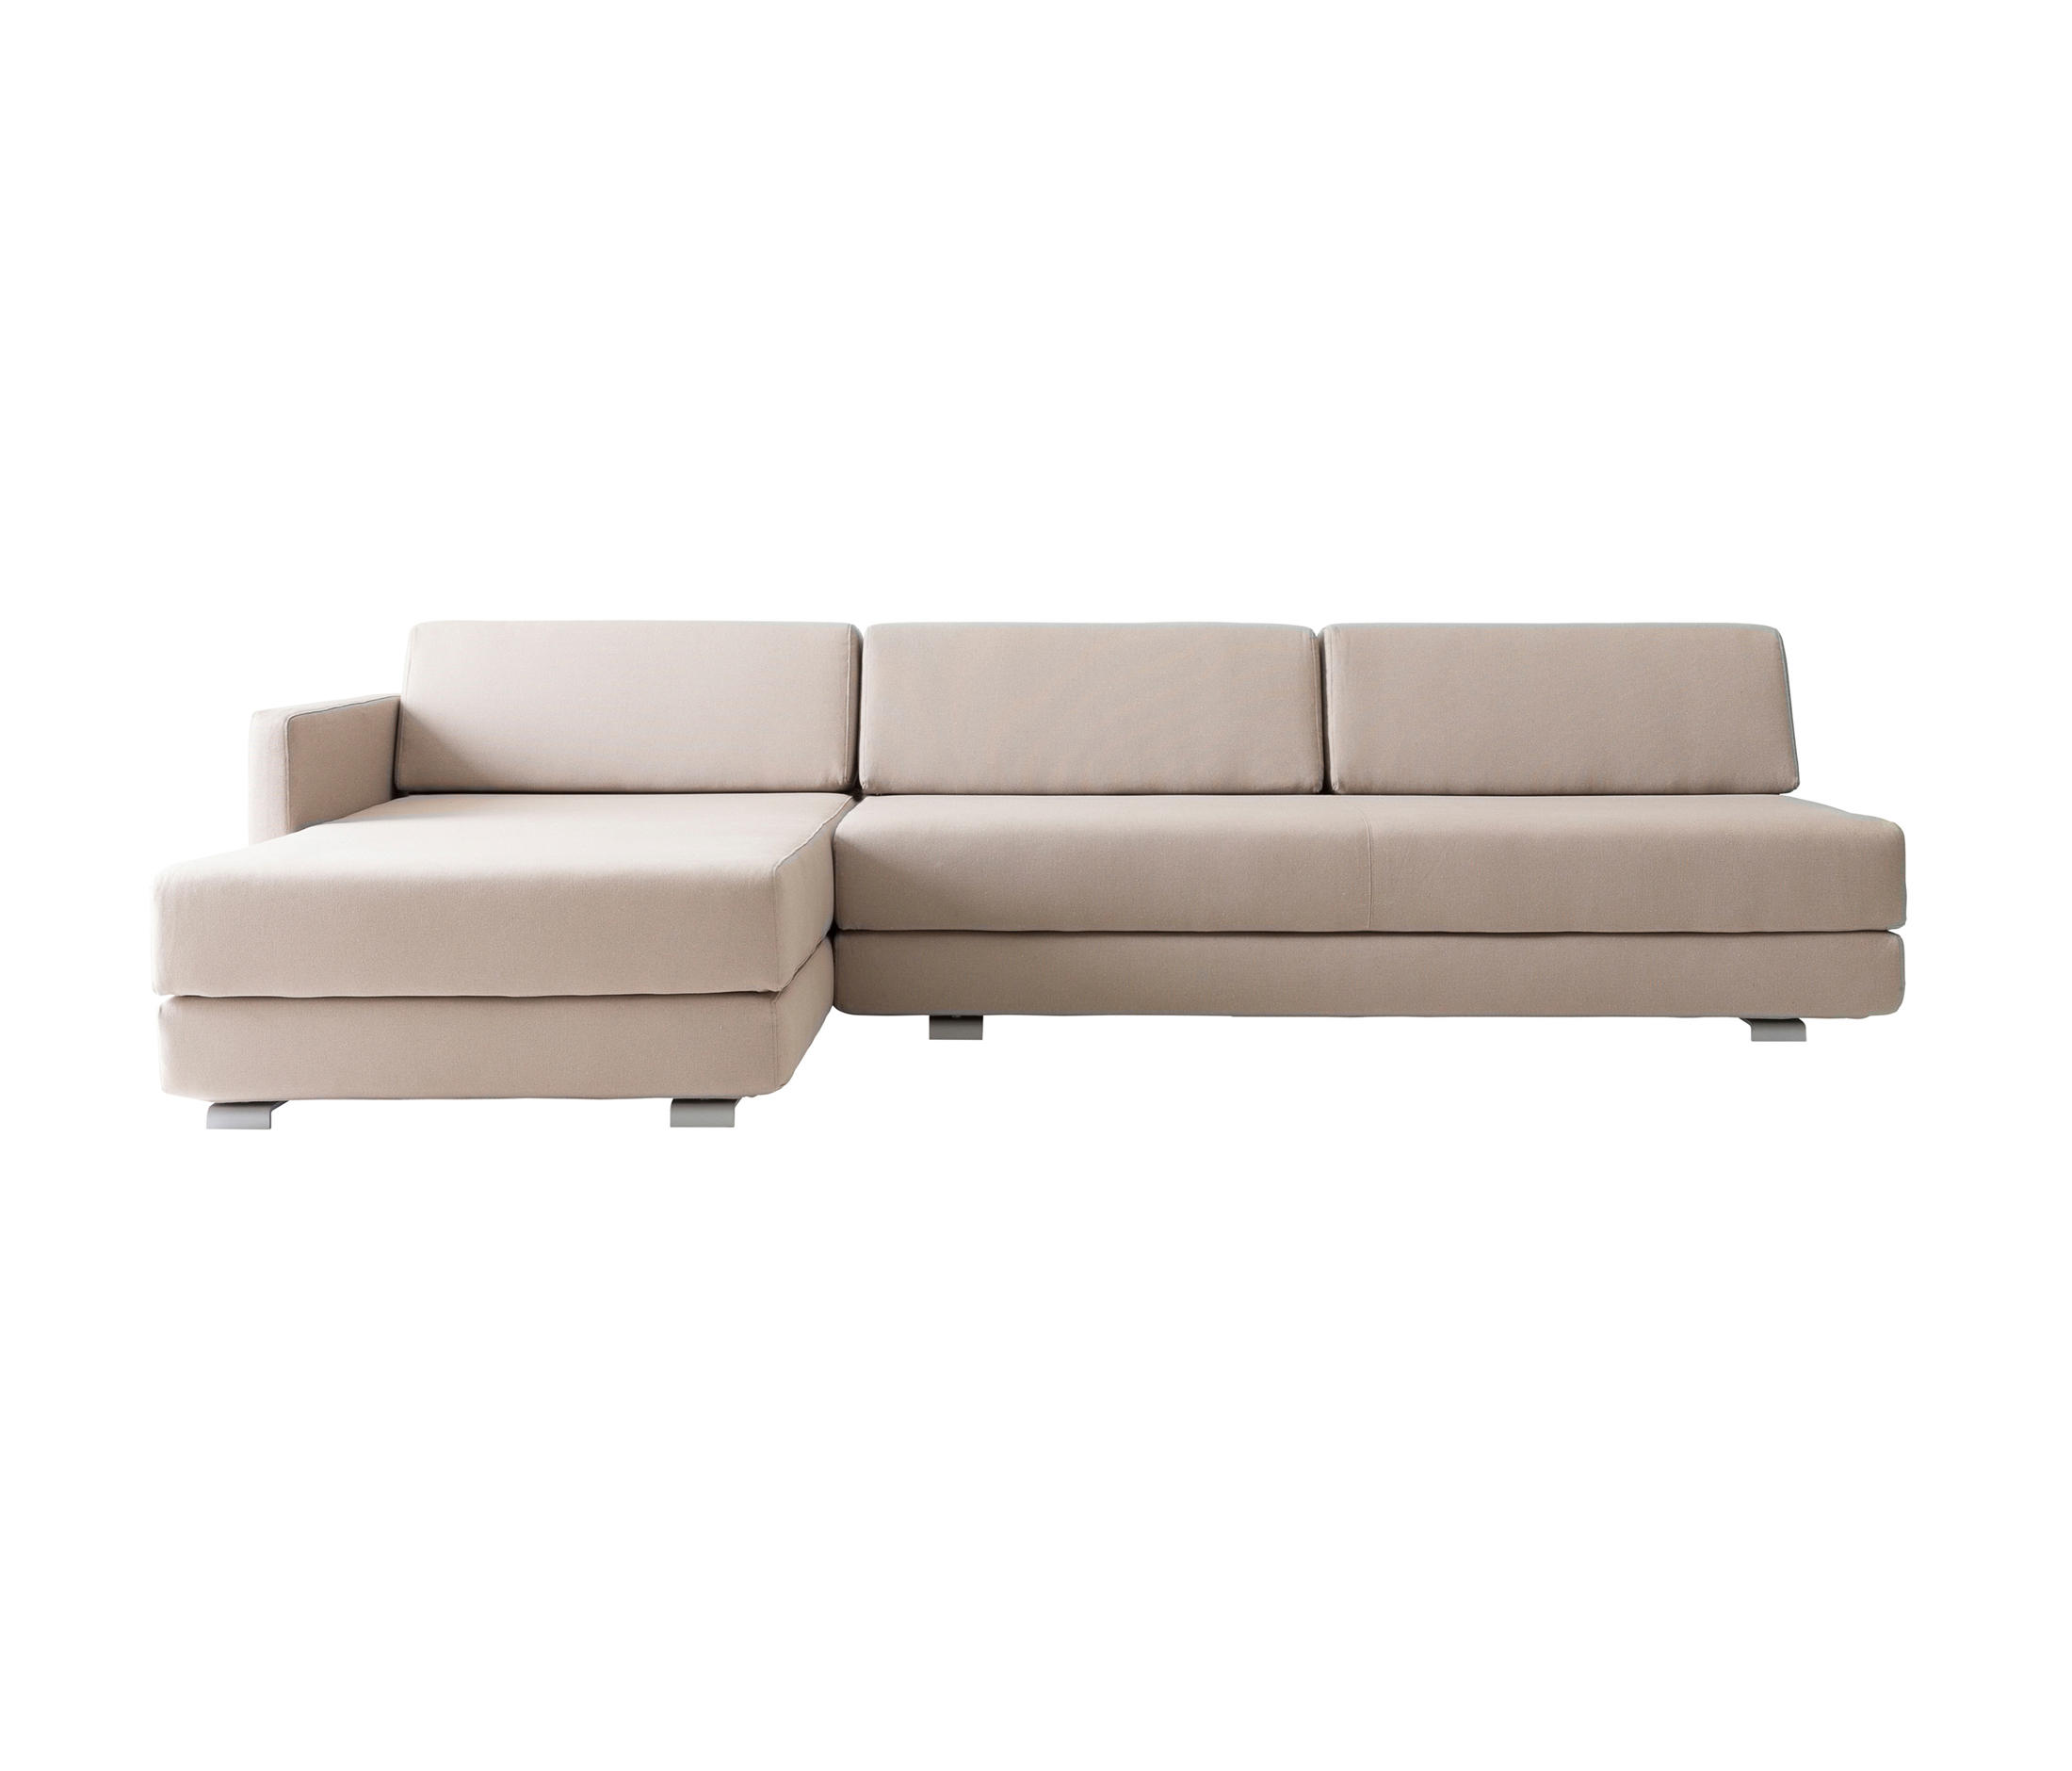 Lounge sofa  LOUNGE SOFA - Sofas from Softline A/S | Architonic